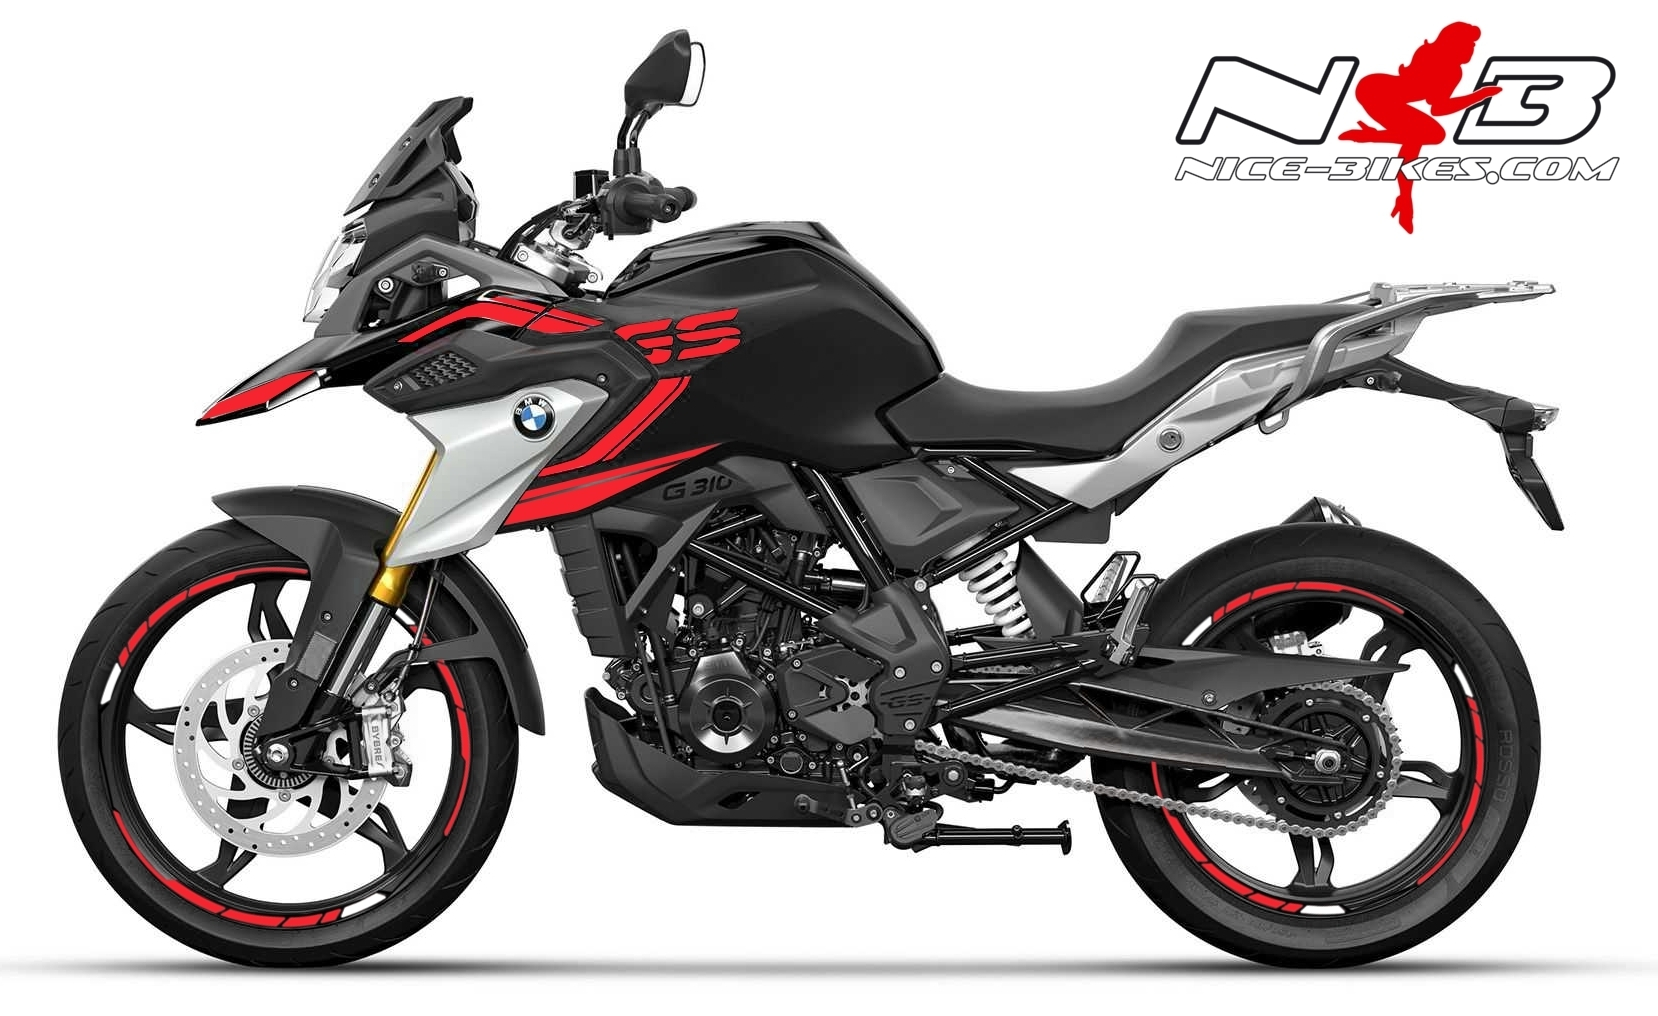 Foliendesign BMW G310GS 2021 Racing Red